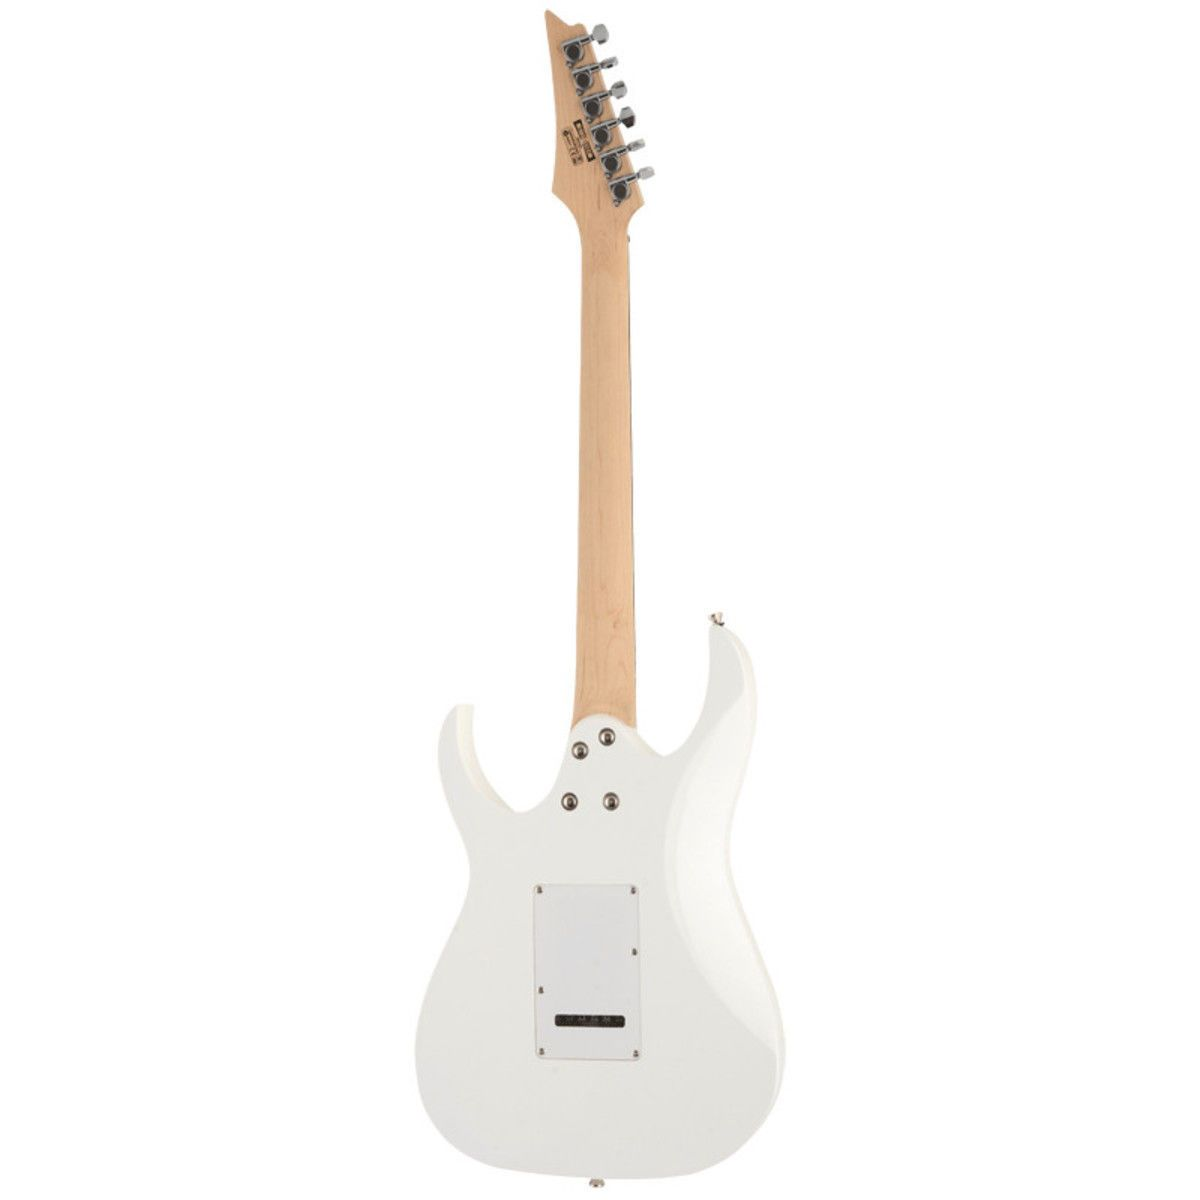 ibanez grg140 electric guitar white grg140 wh new boxed. Black Bedroom Furniture Sets. Home Design Ideas